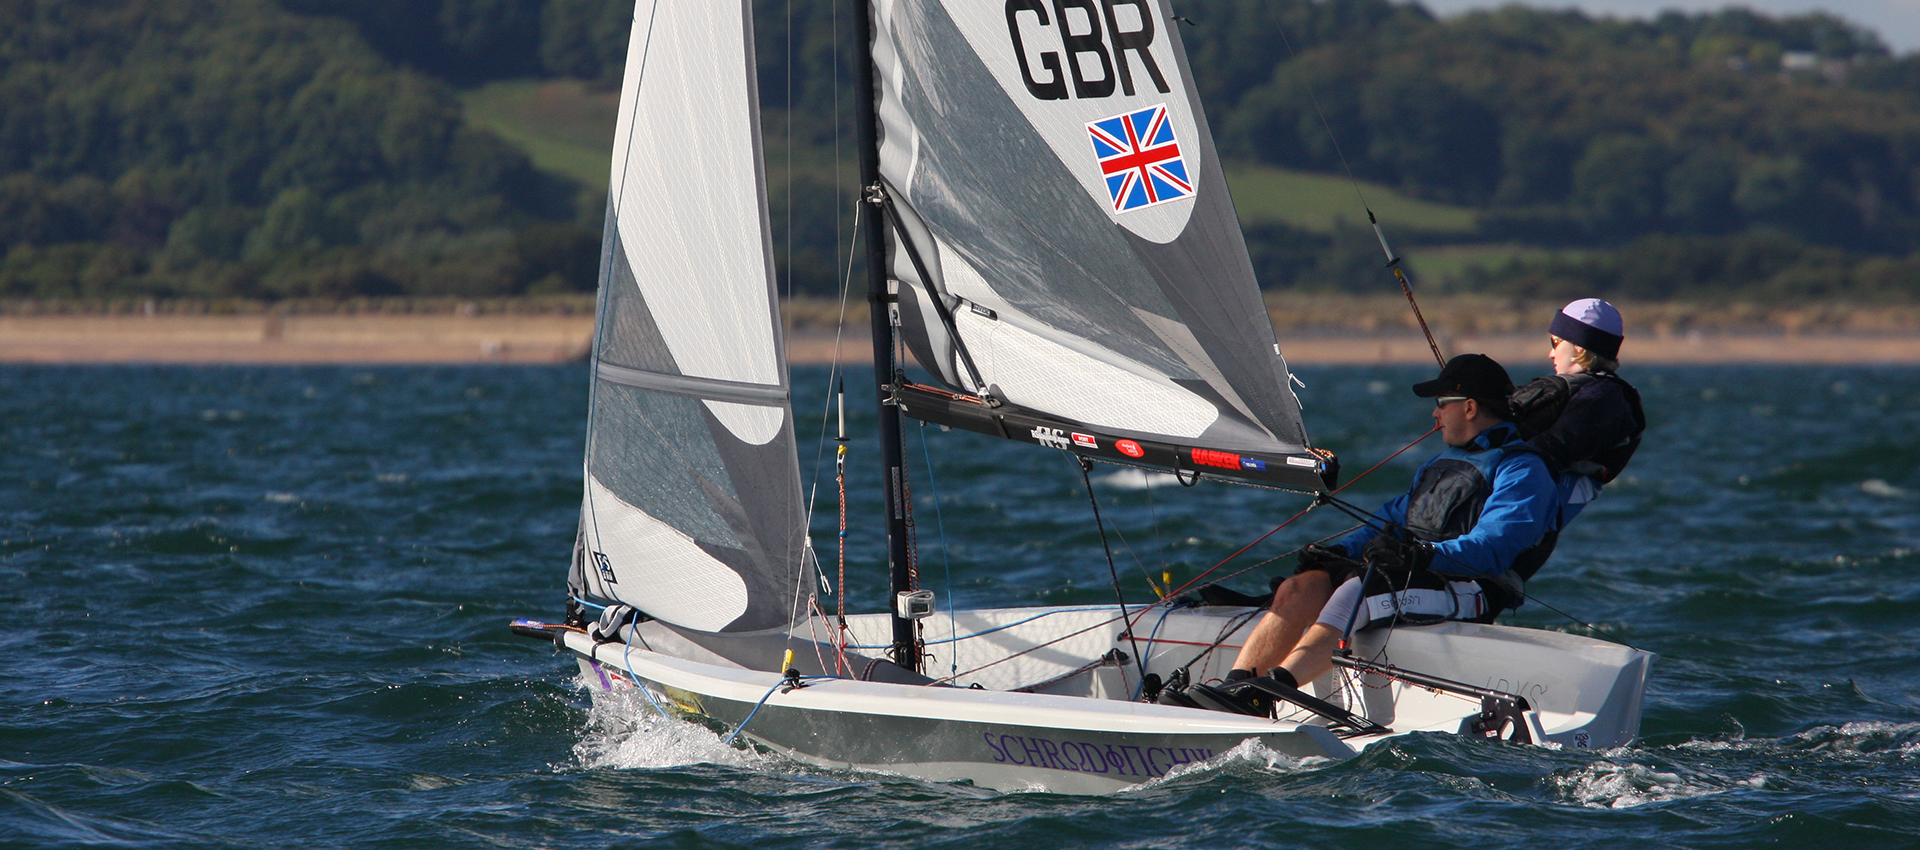 RS500 – international double-hander with gennaker, trapeze and competitive circuit lifestyle